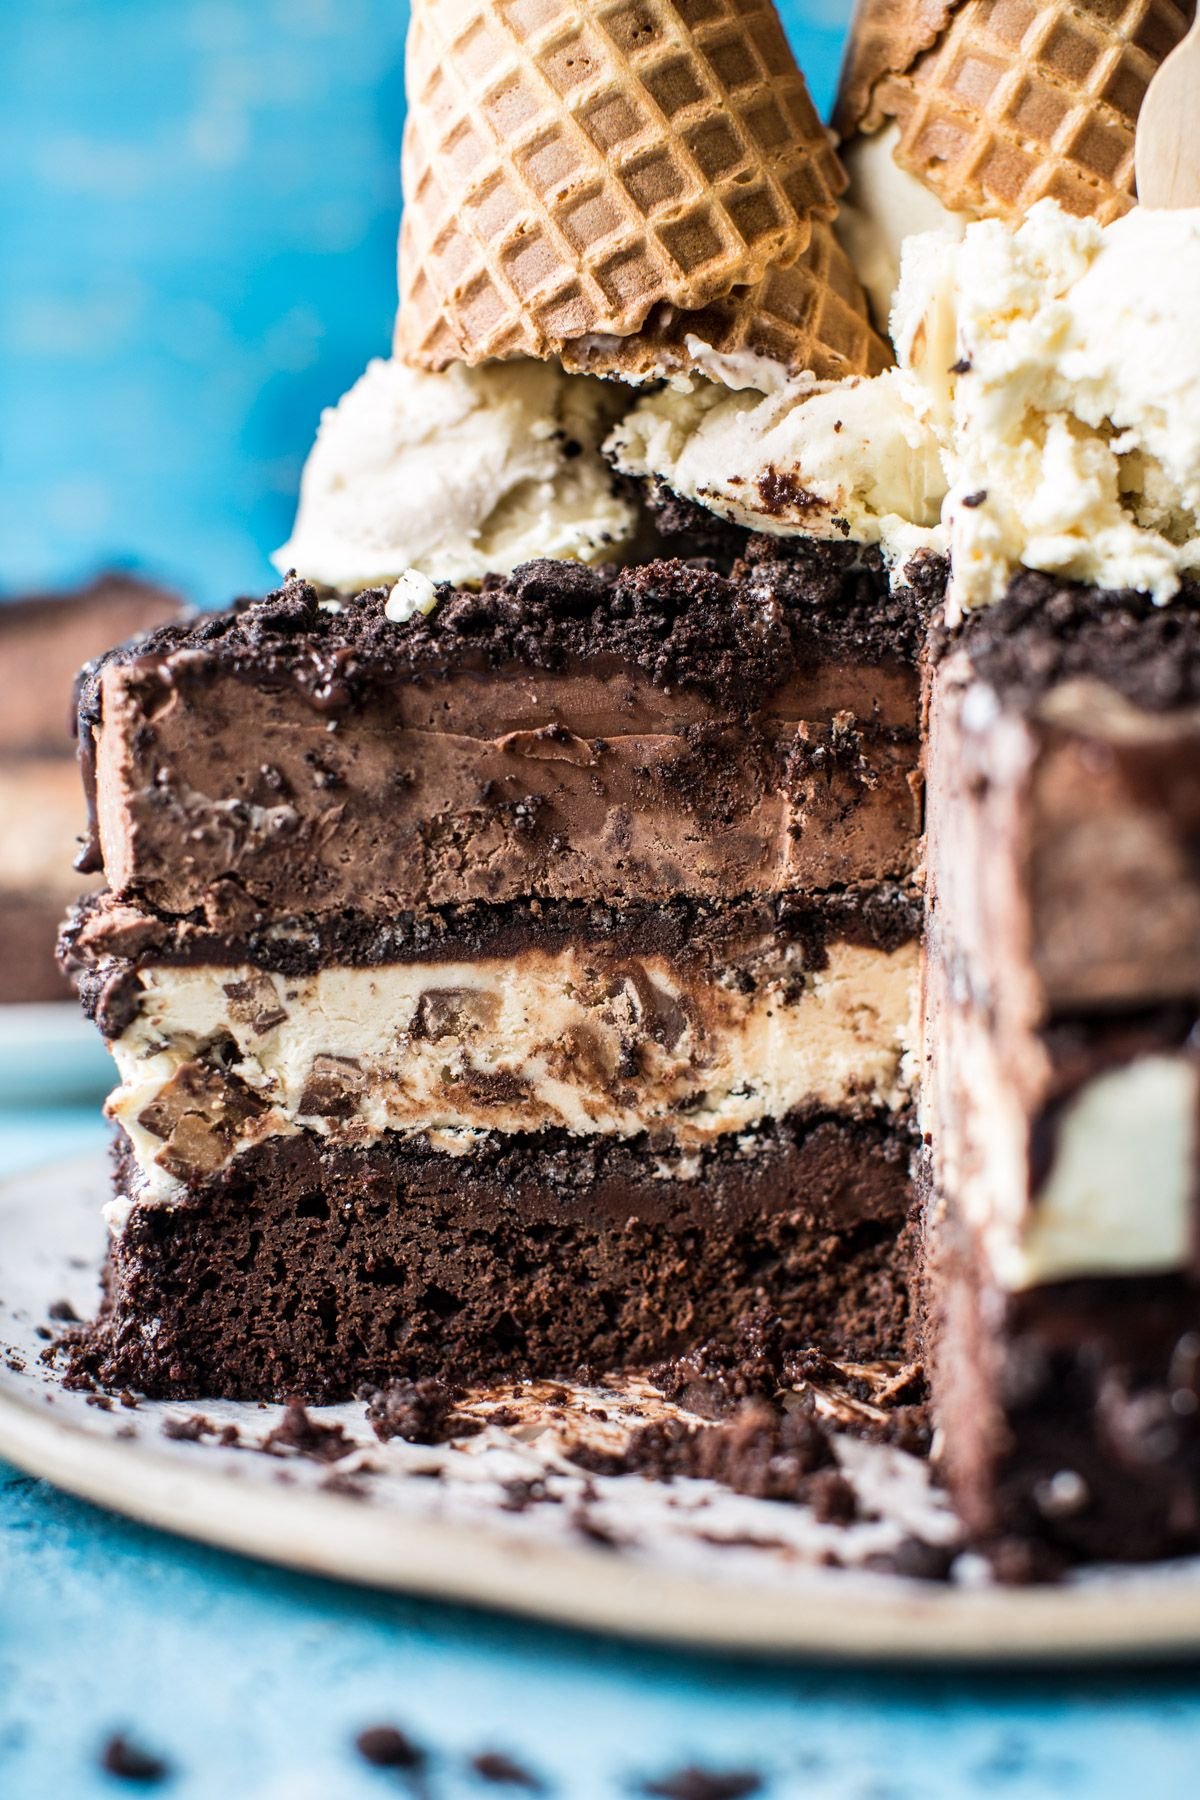 Snickers Ice Cream Cake Baskin Robbins